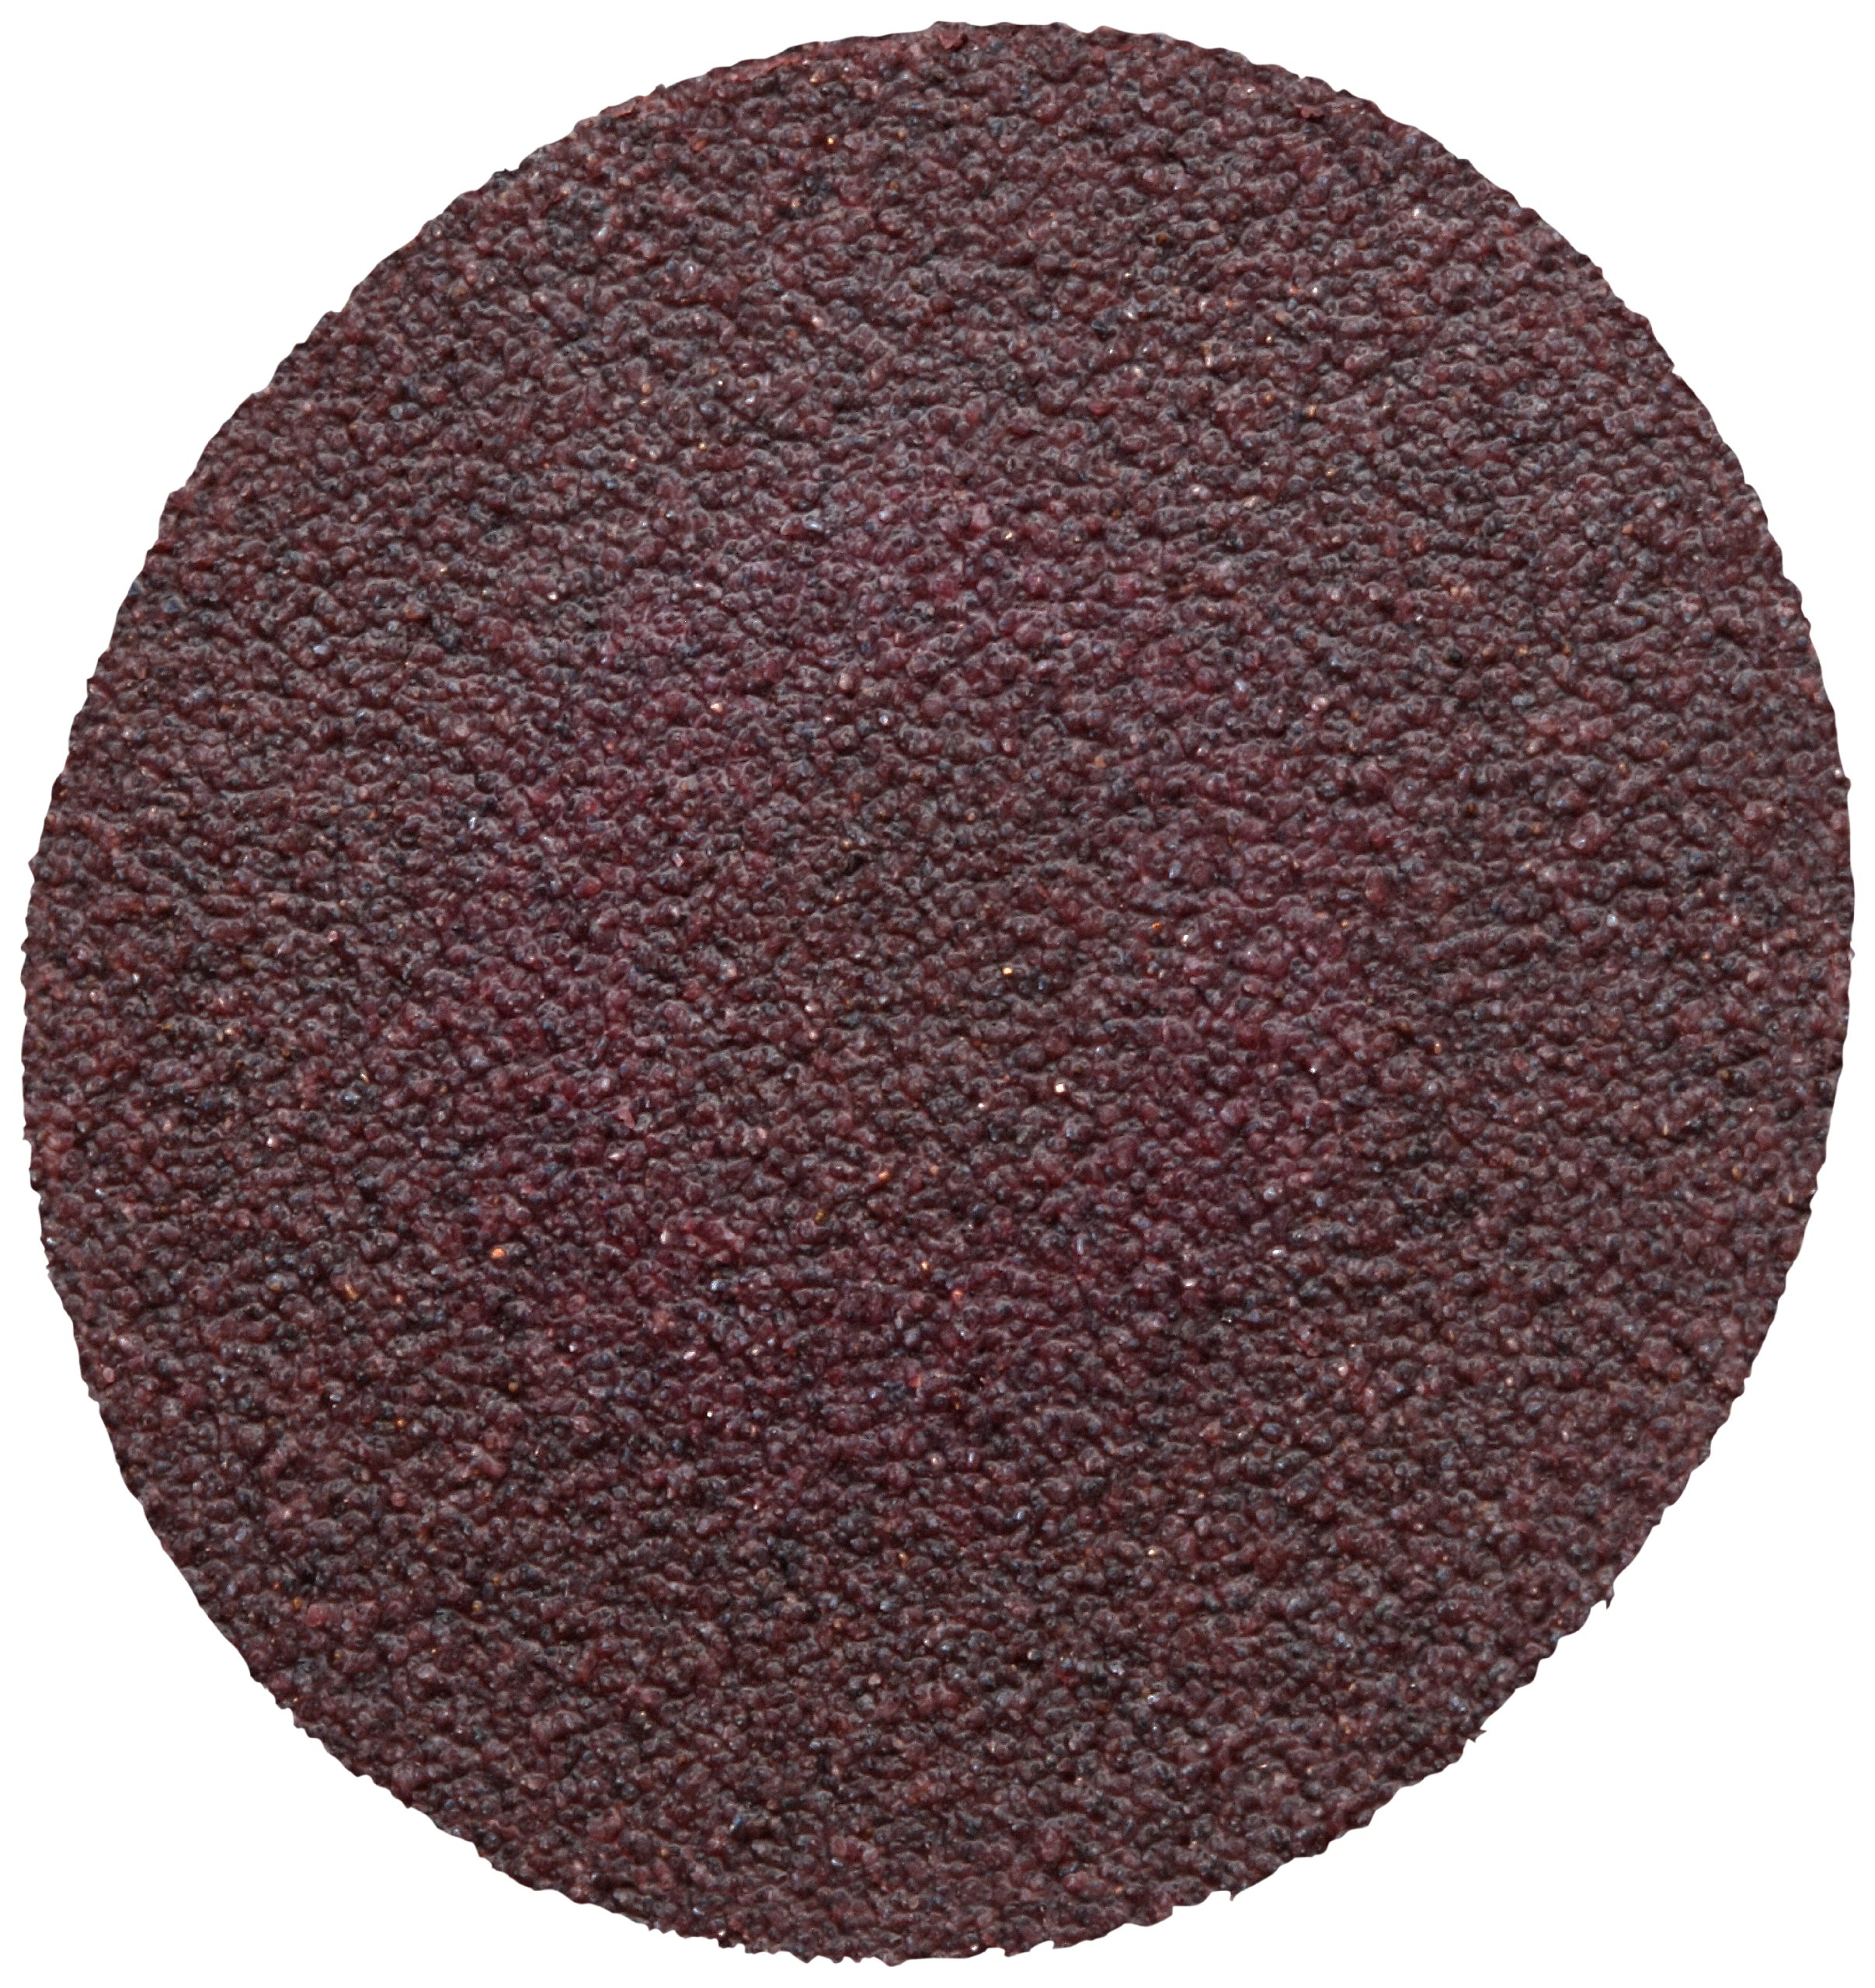 2 2 Sungold Abrasives 74925 Medium Non Woven Surface Conditioning R-Type Quick Change Disc Maroon 100//Box